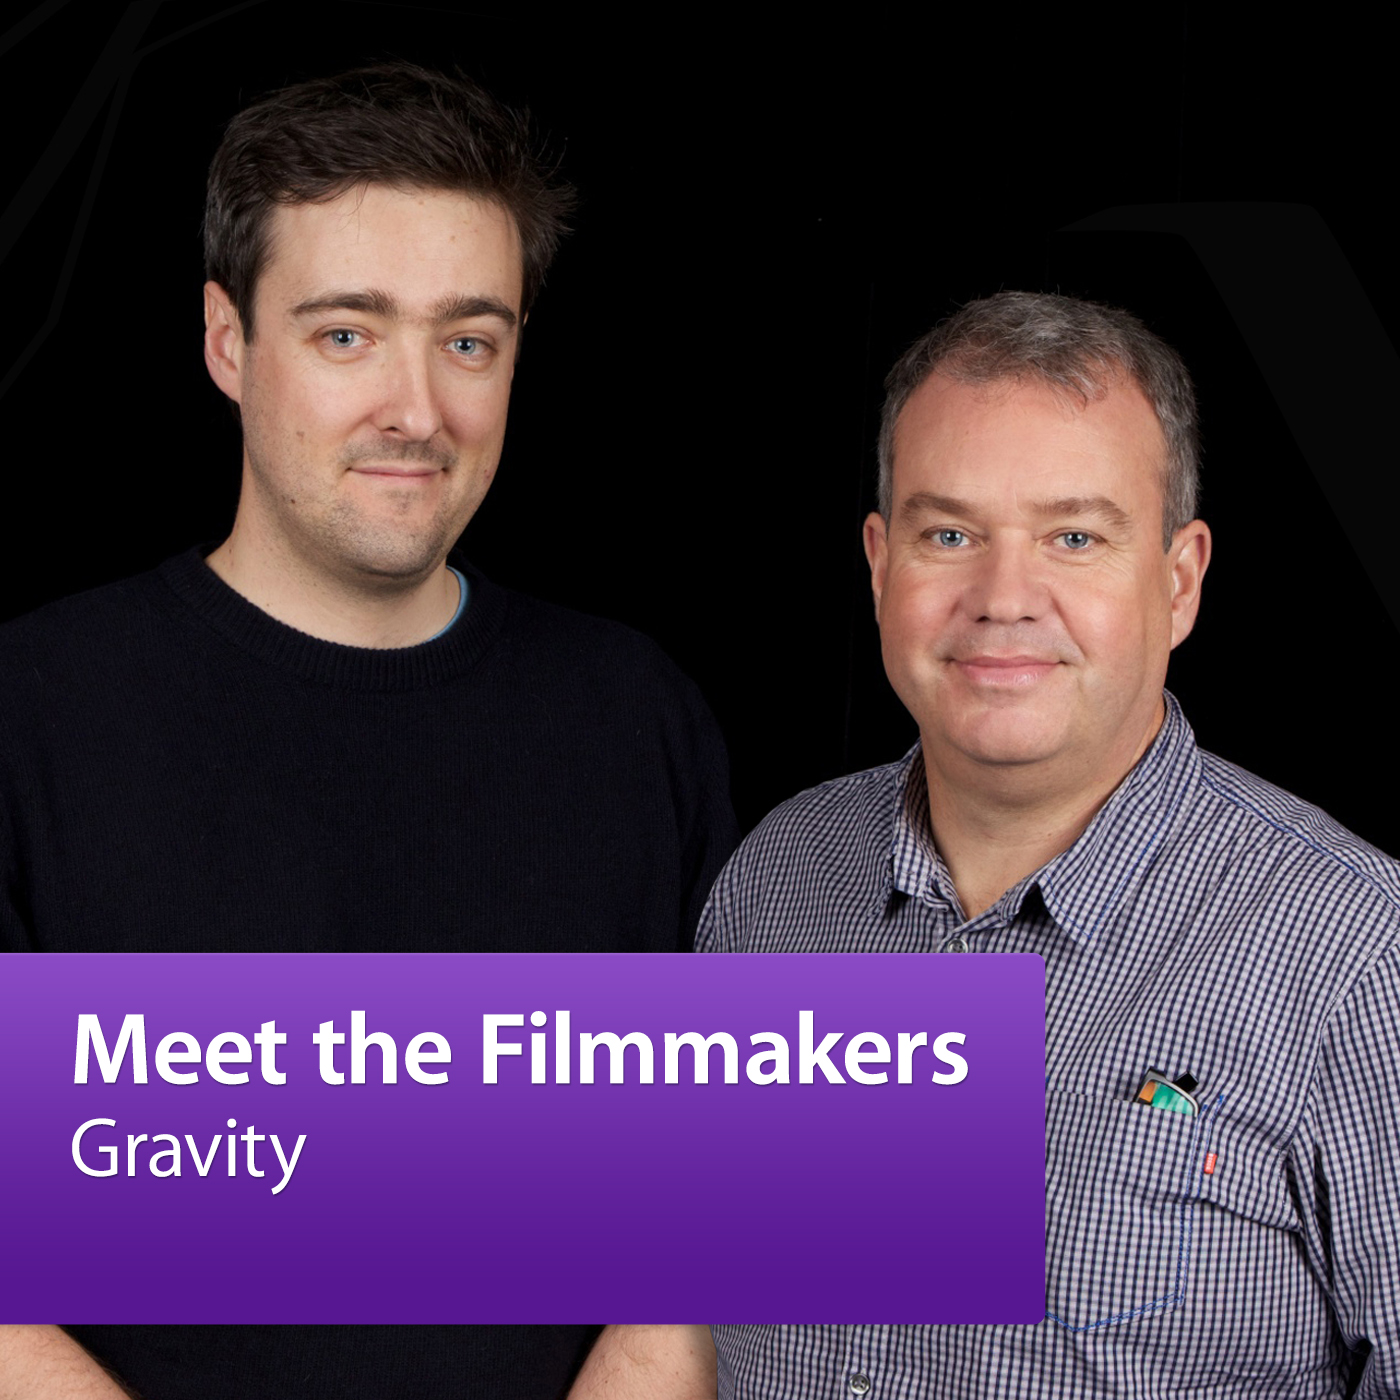 Gravity: Meet the Filmmaker